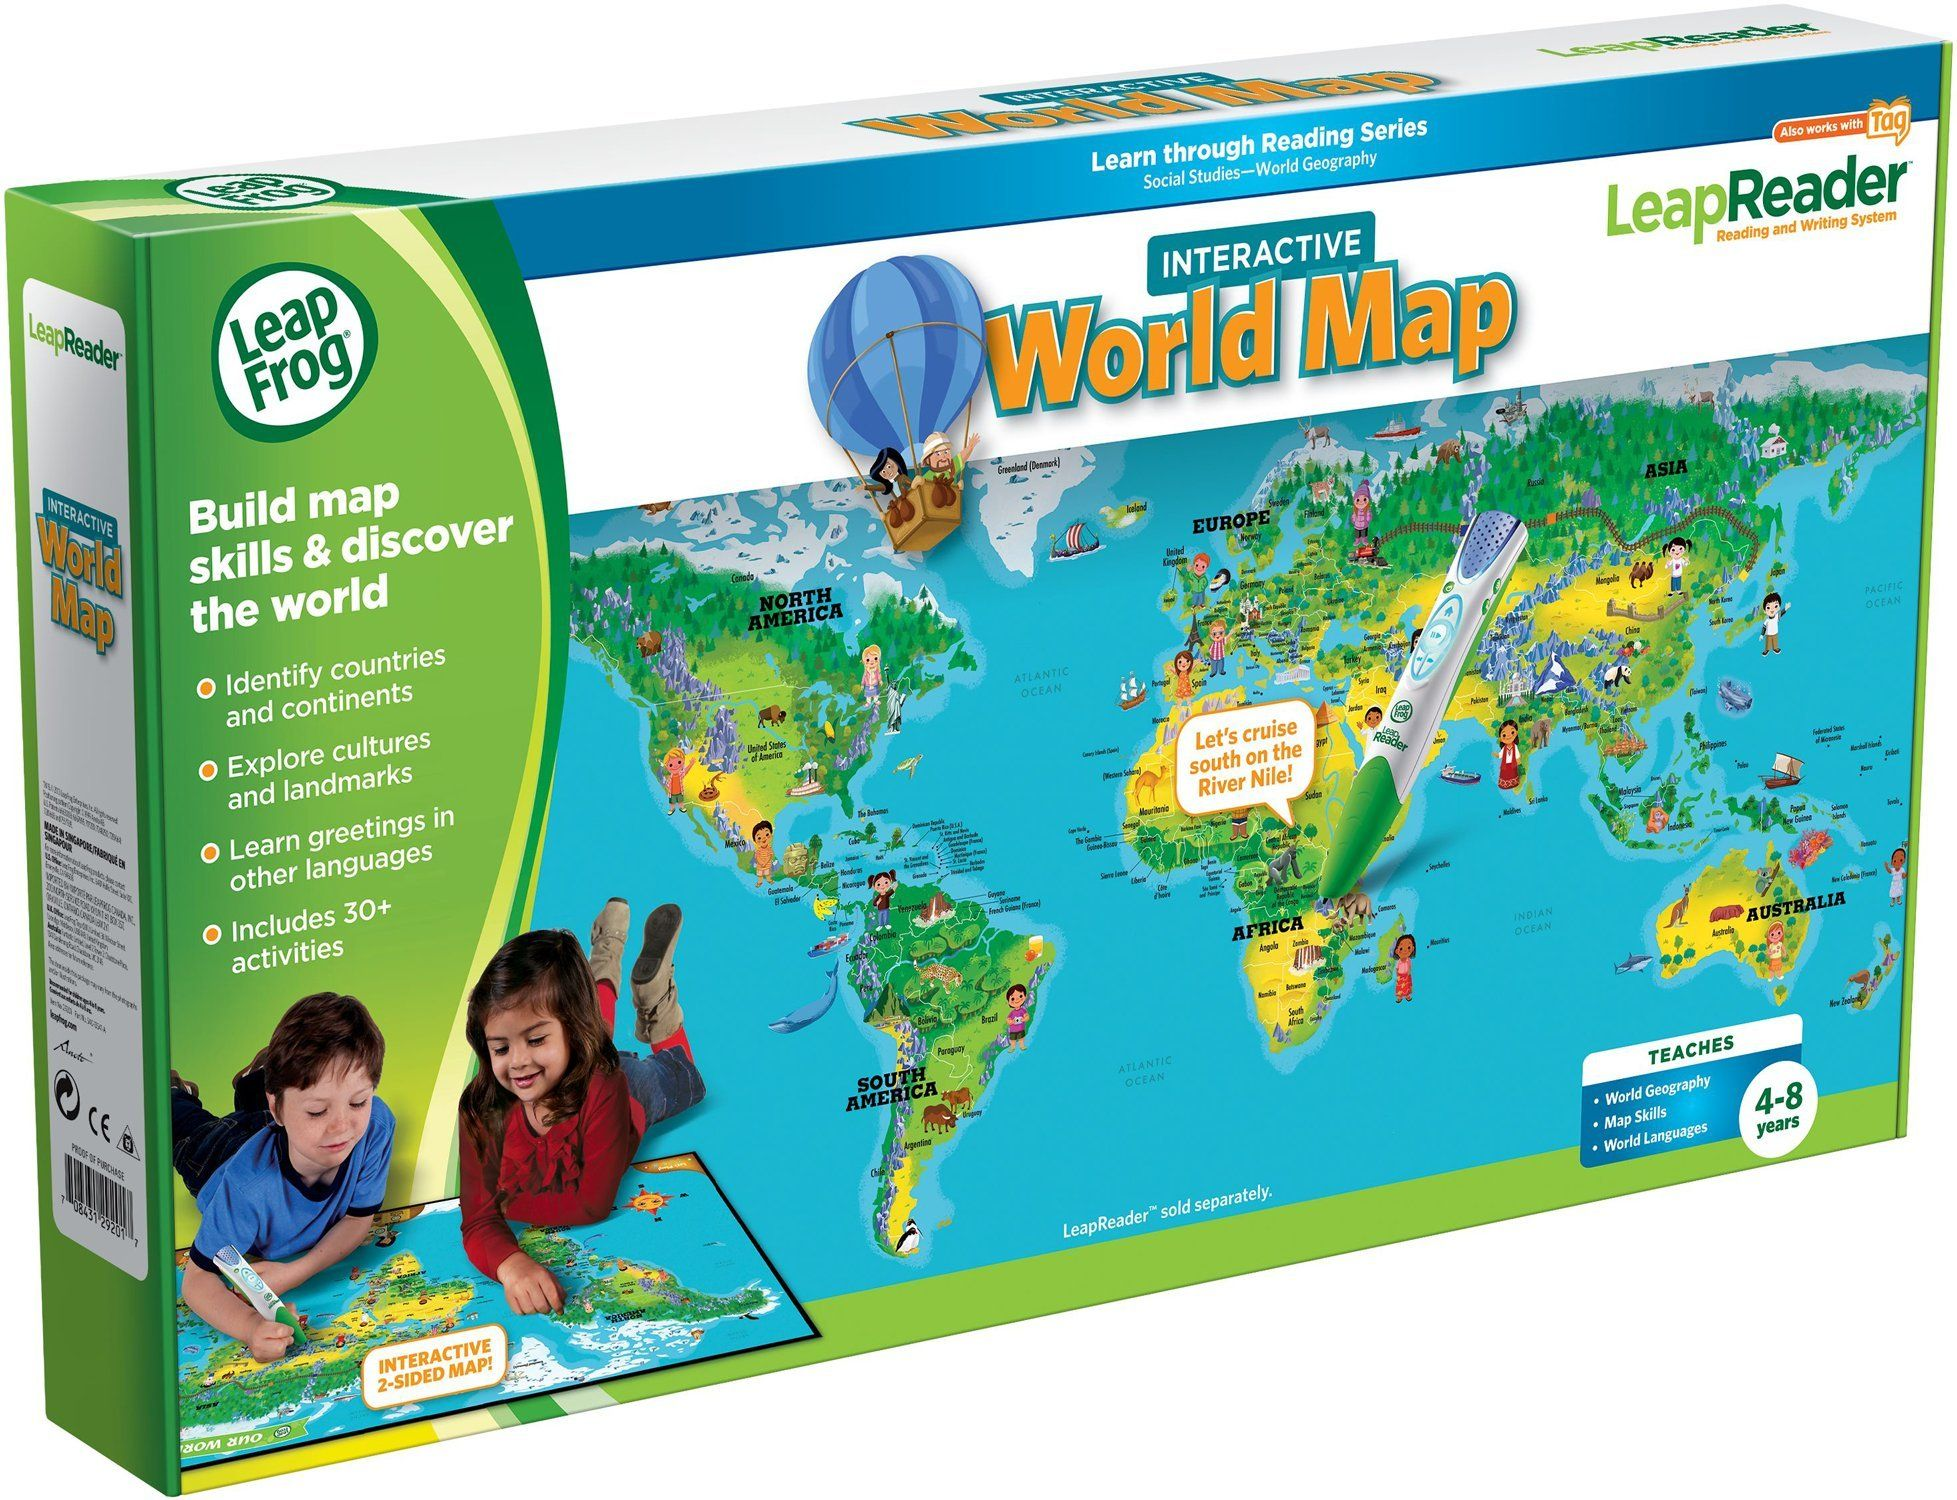 20 leapfrog leapreader interactive world map works with tag toys 20 leapfrog leapreader interactive world map works with tag toys games gumiabroncs Gallery